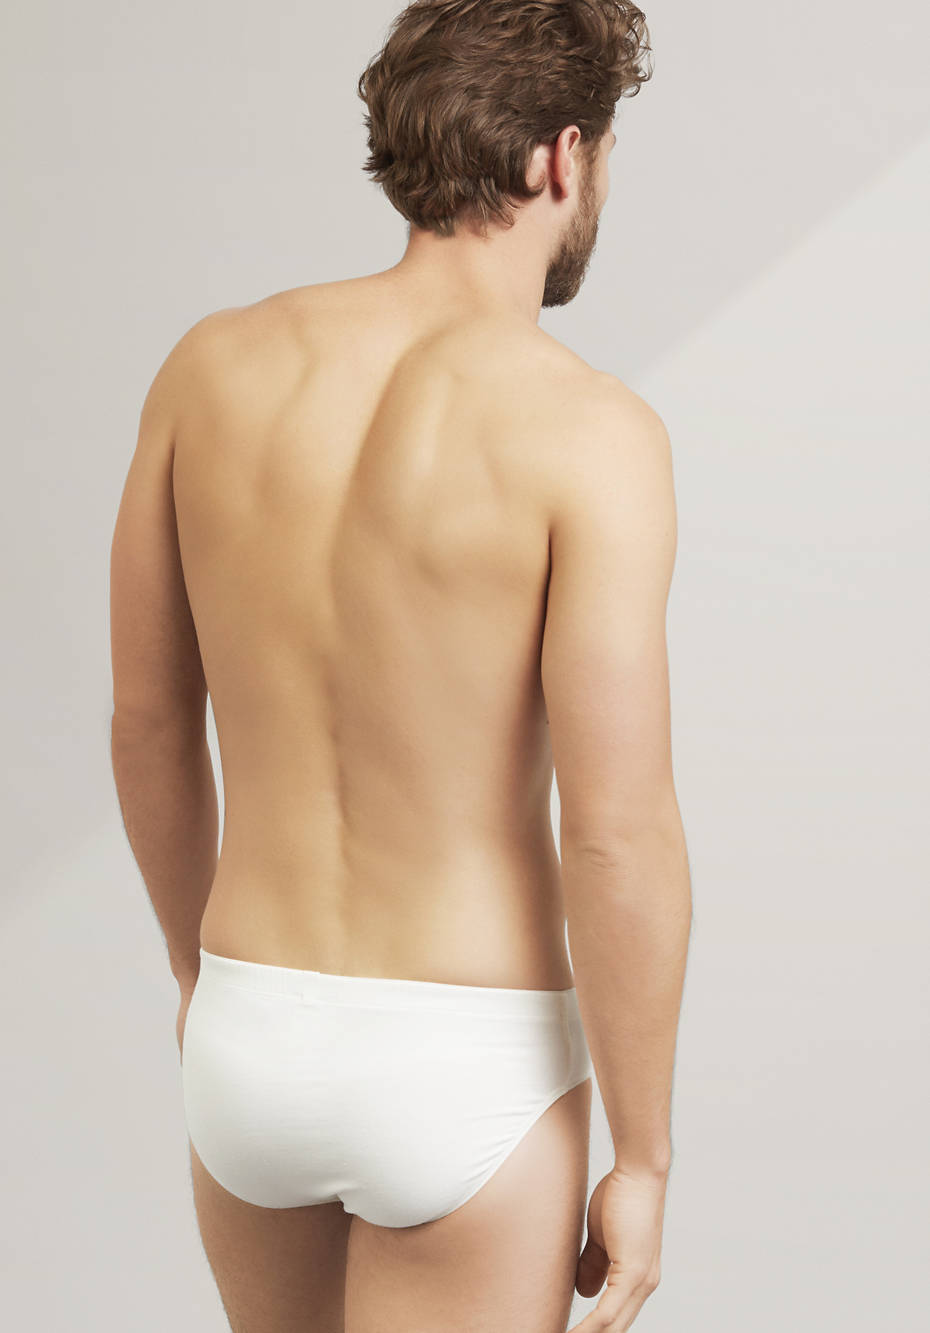 PureLUX briefs in a set of 2 made of organic cotton